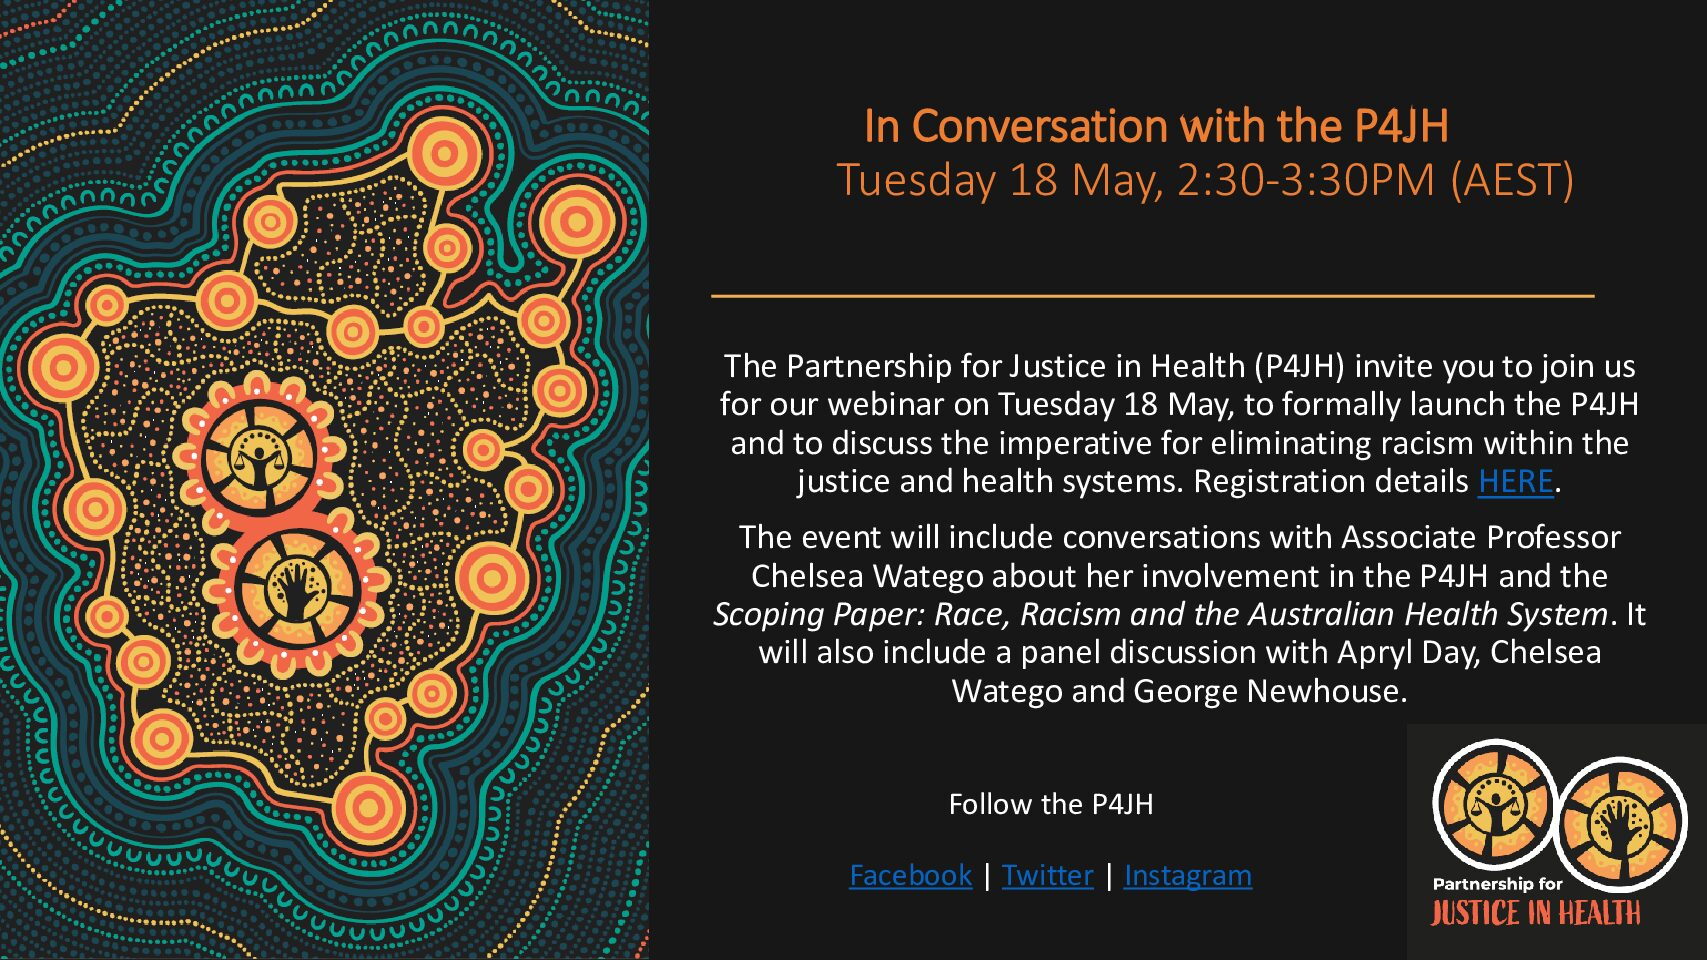 In Conversation with the P4JH_Webinar Invite